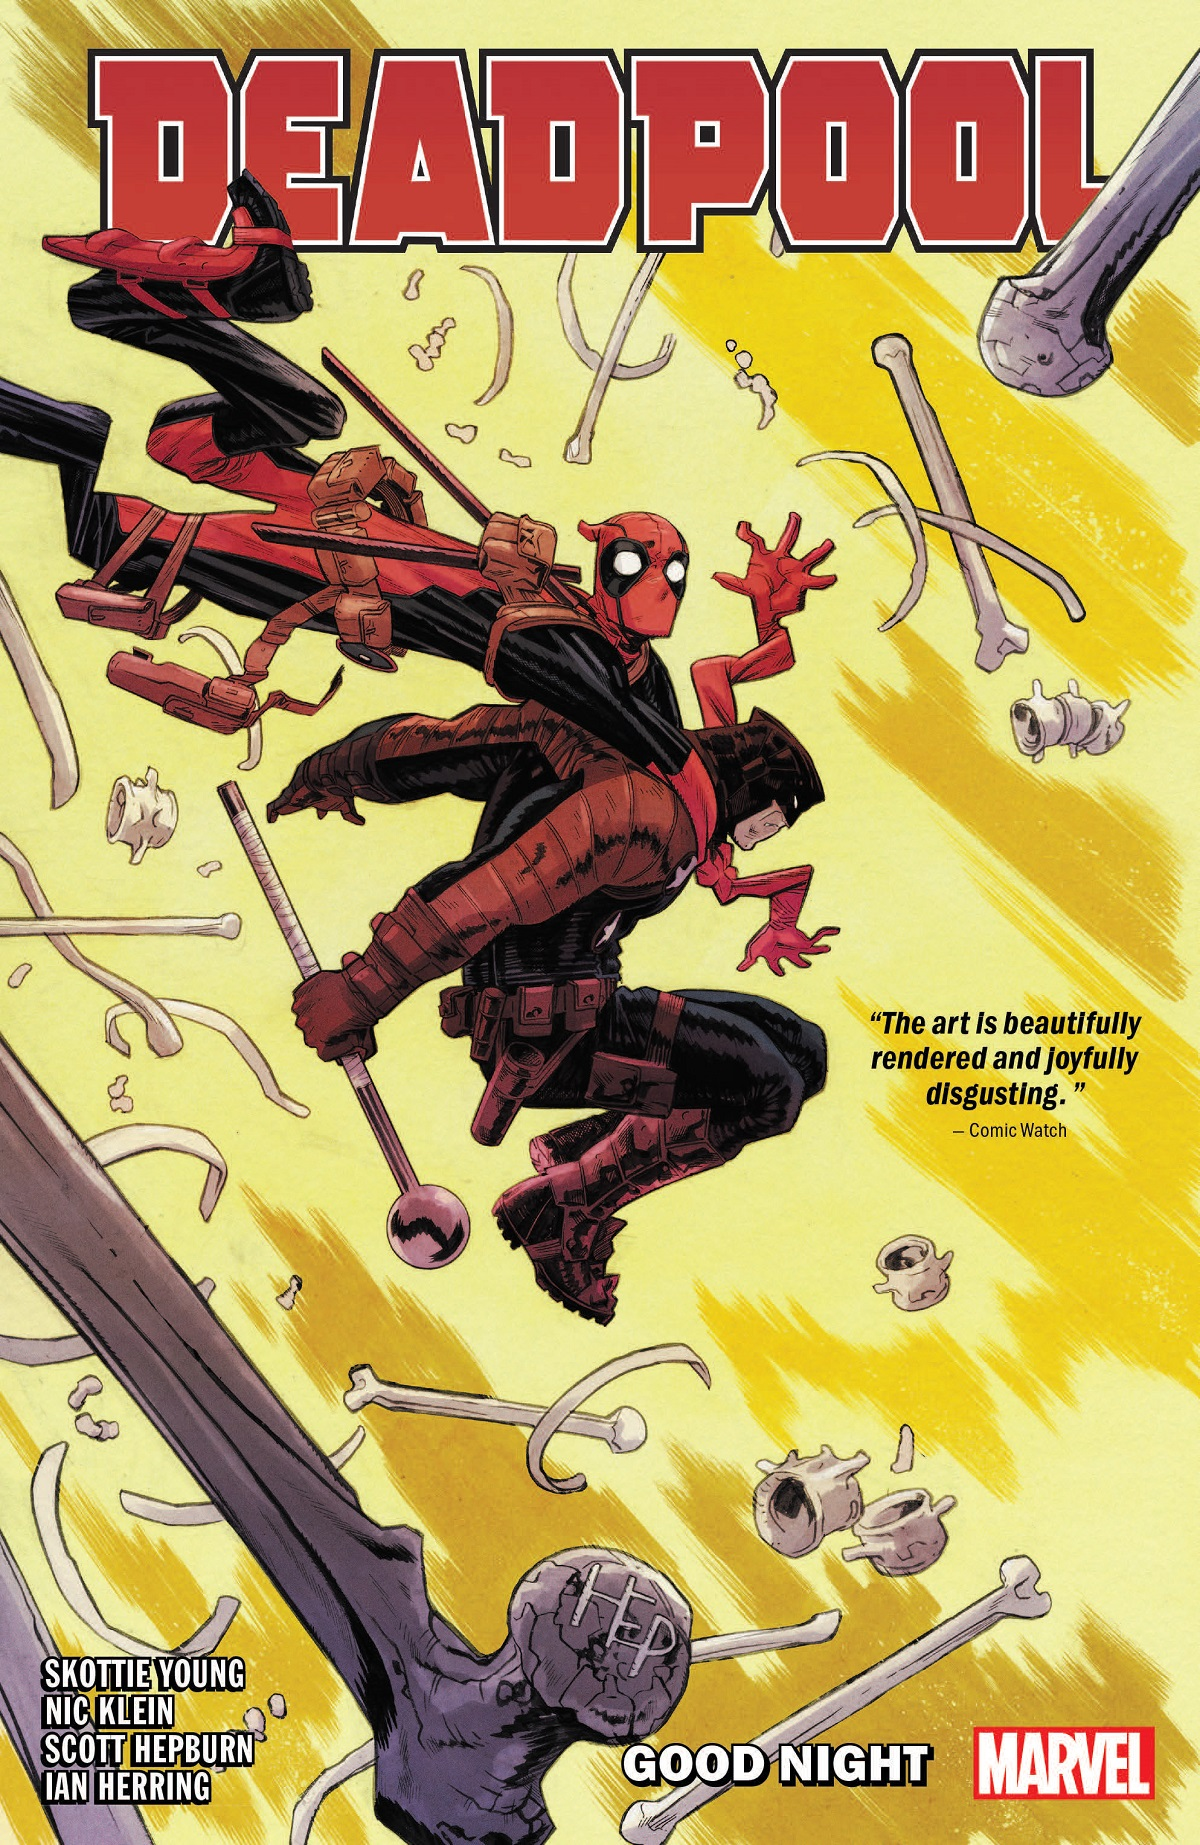 Deadpool By Skottie Young Vol. 2: Good Night (Trade Paperback)